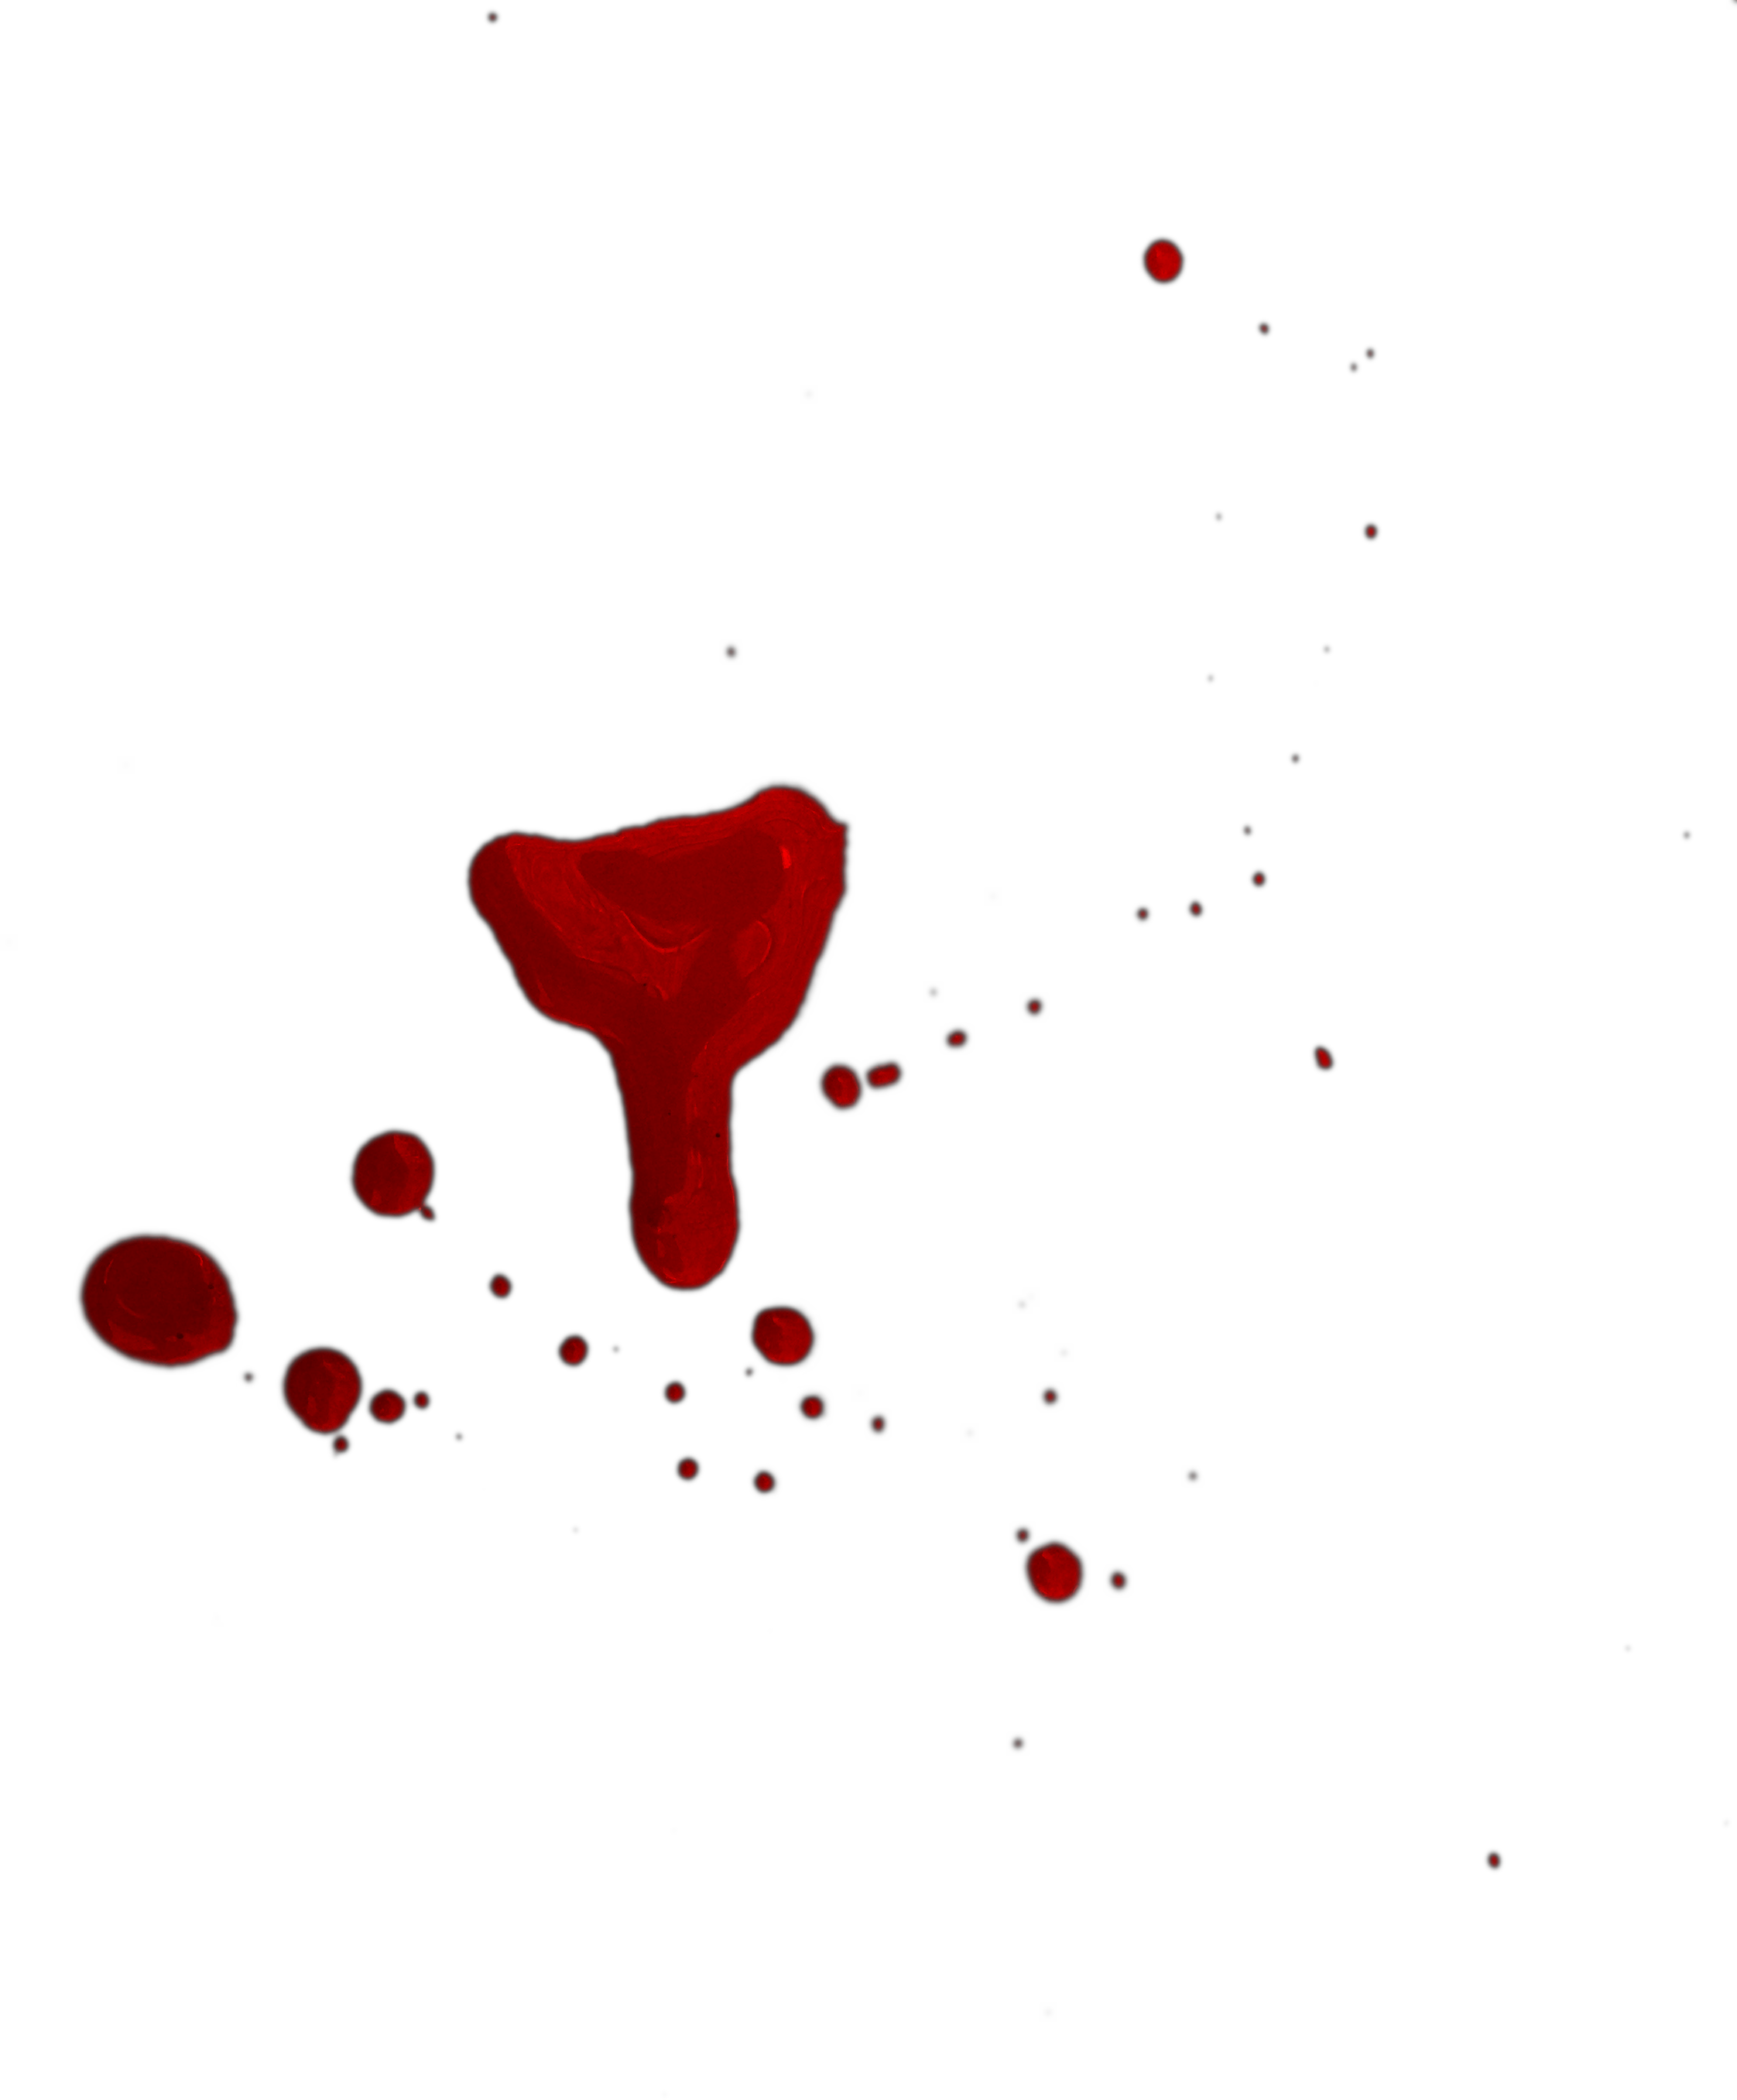 Blood Drip Background 26 image #45446